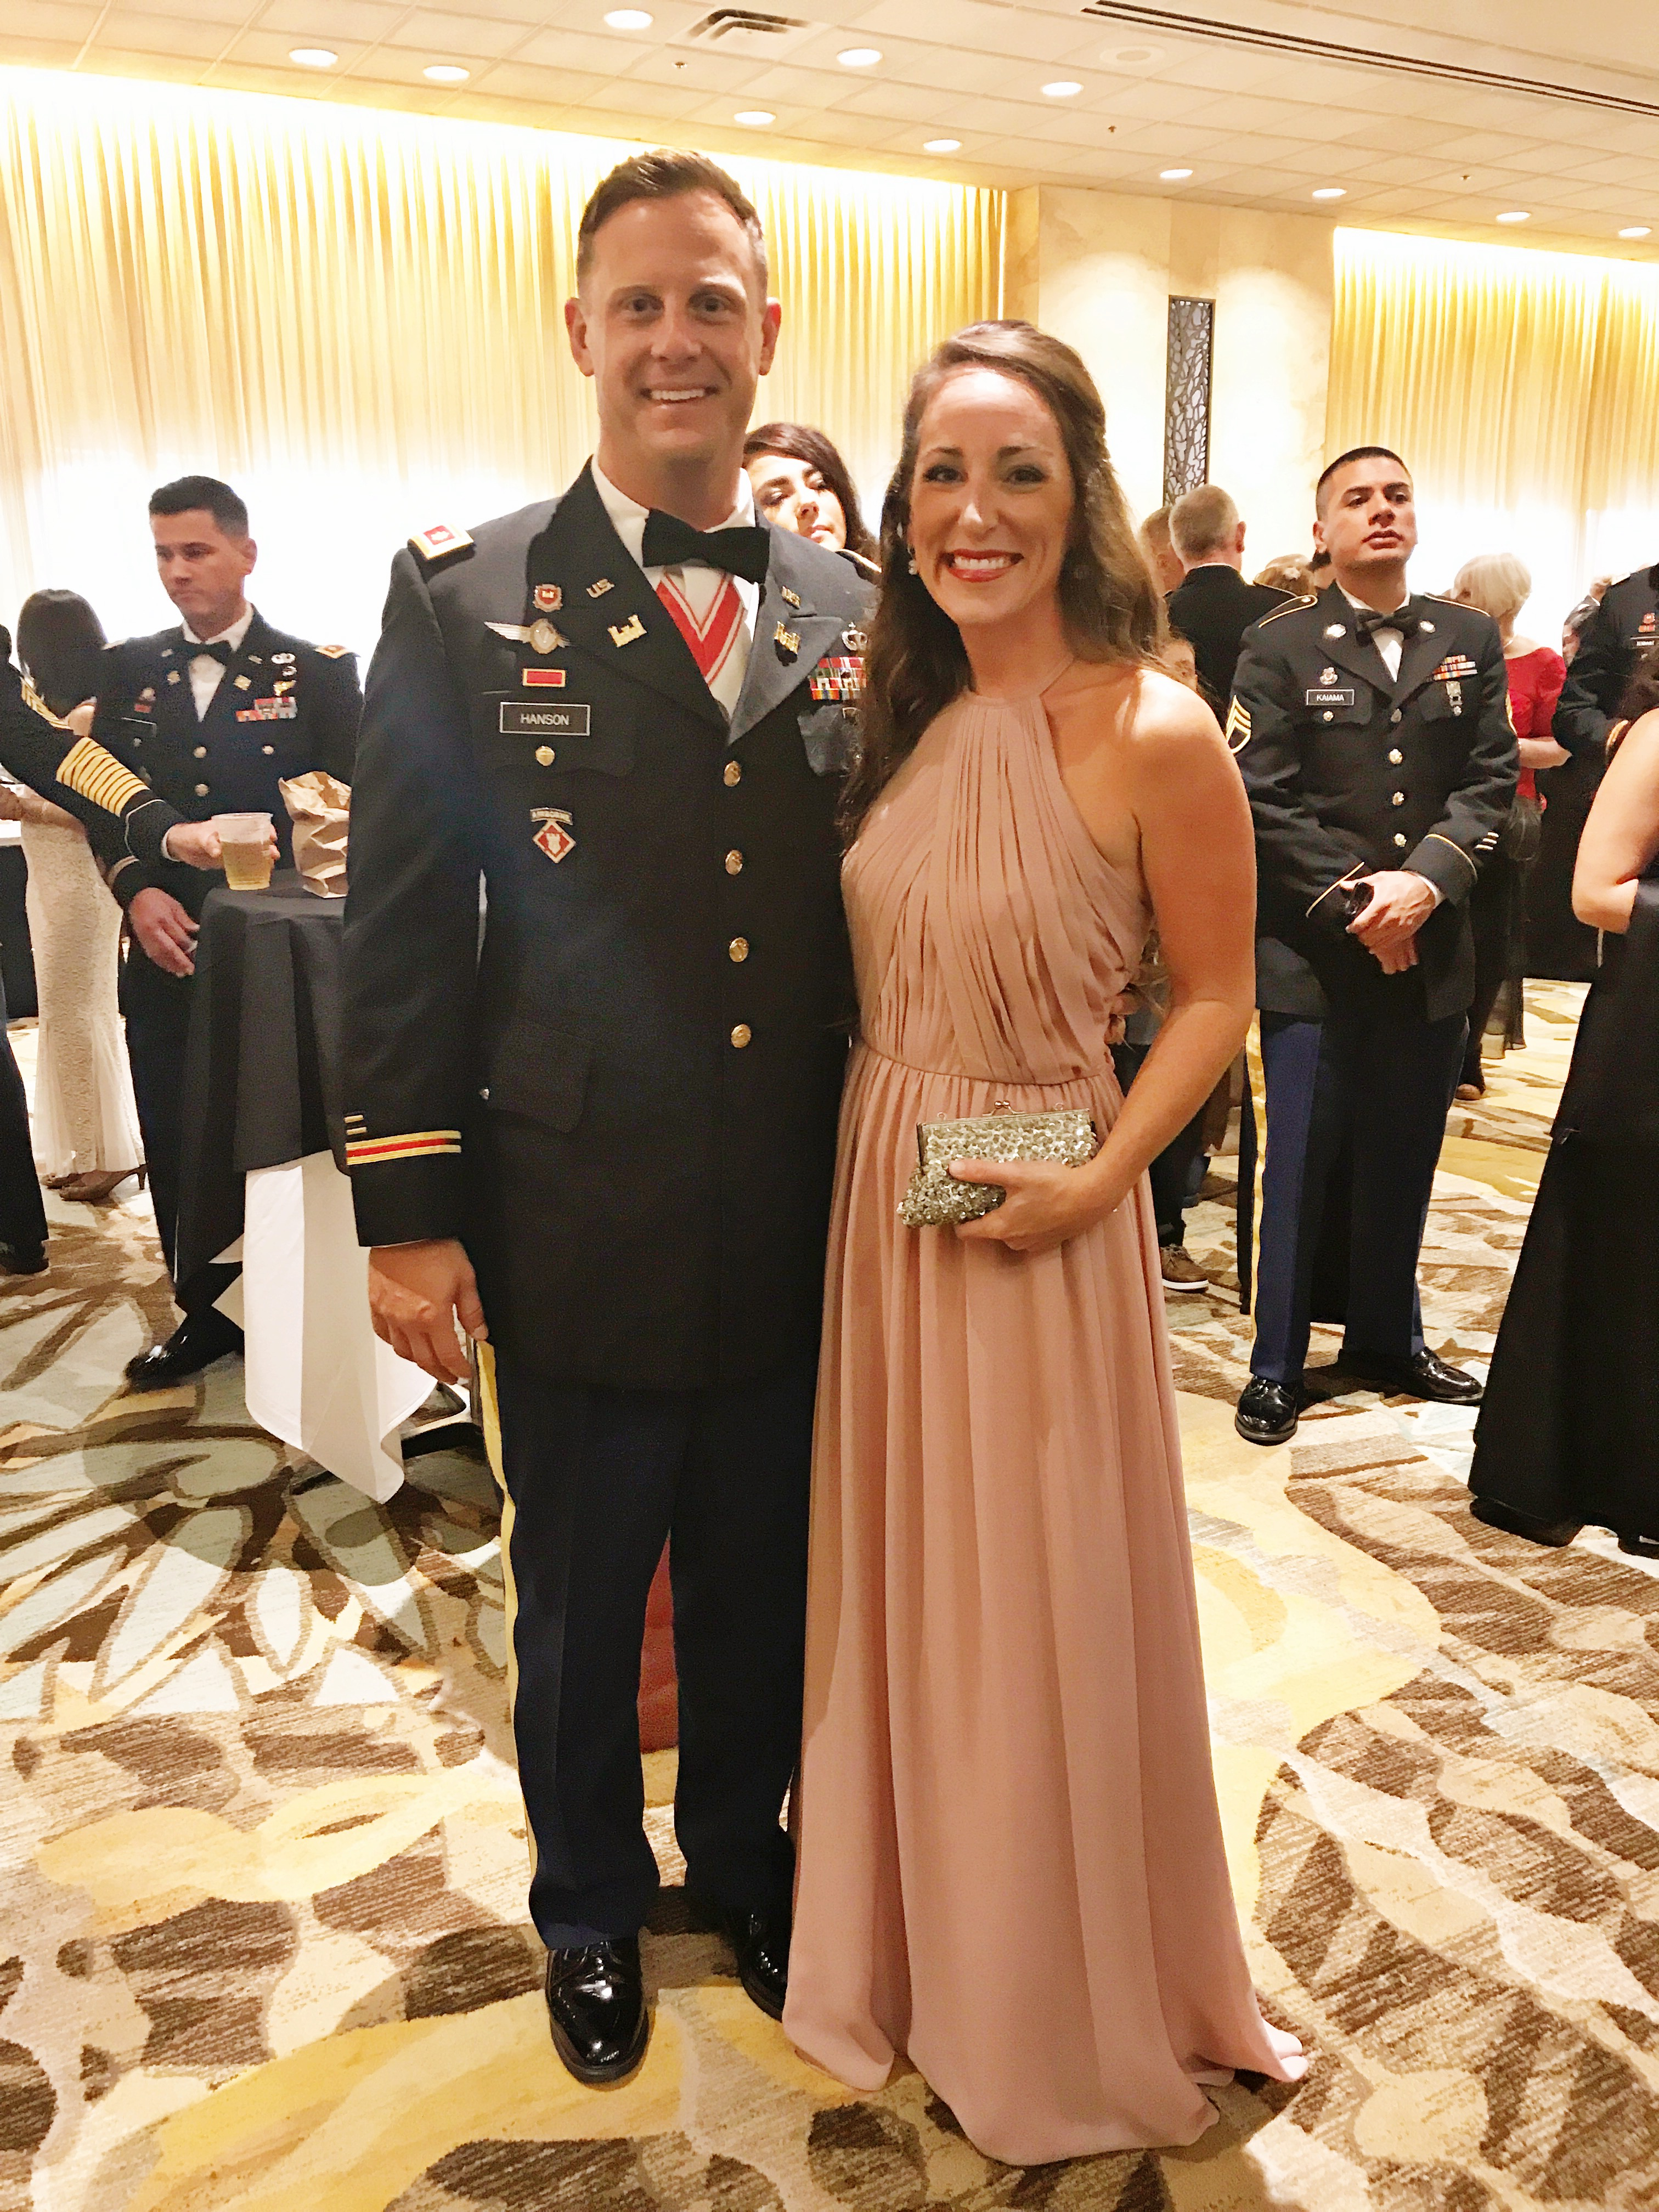 Army Ball - Our Weekend Recap - Communikait by Kait Hanson